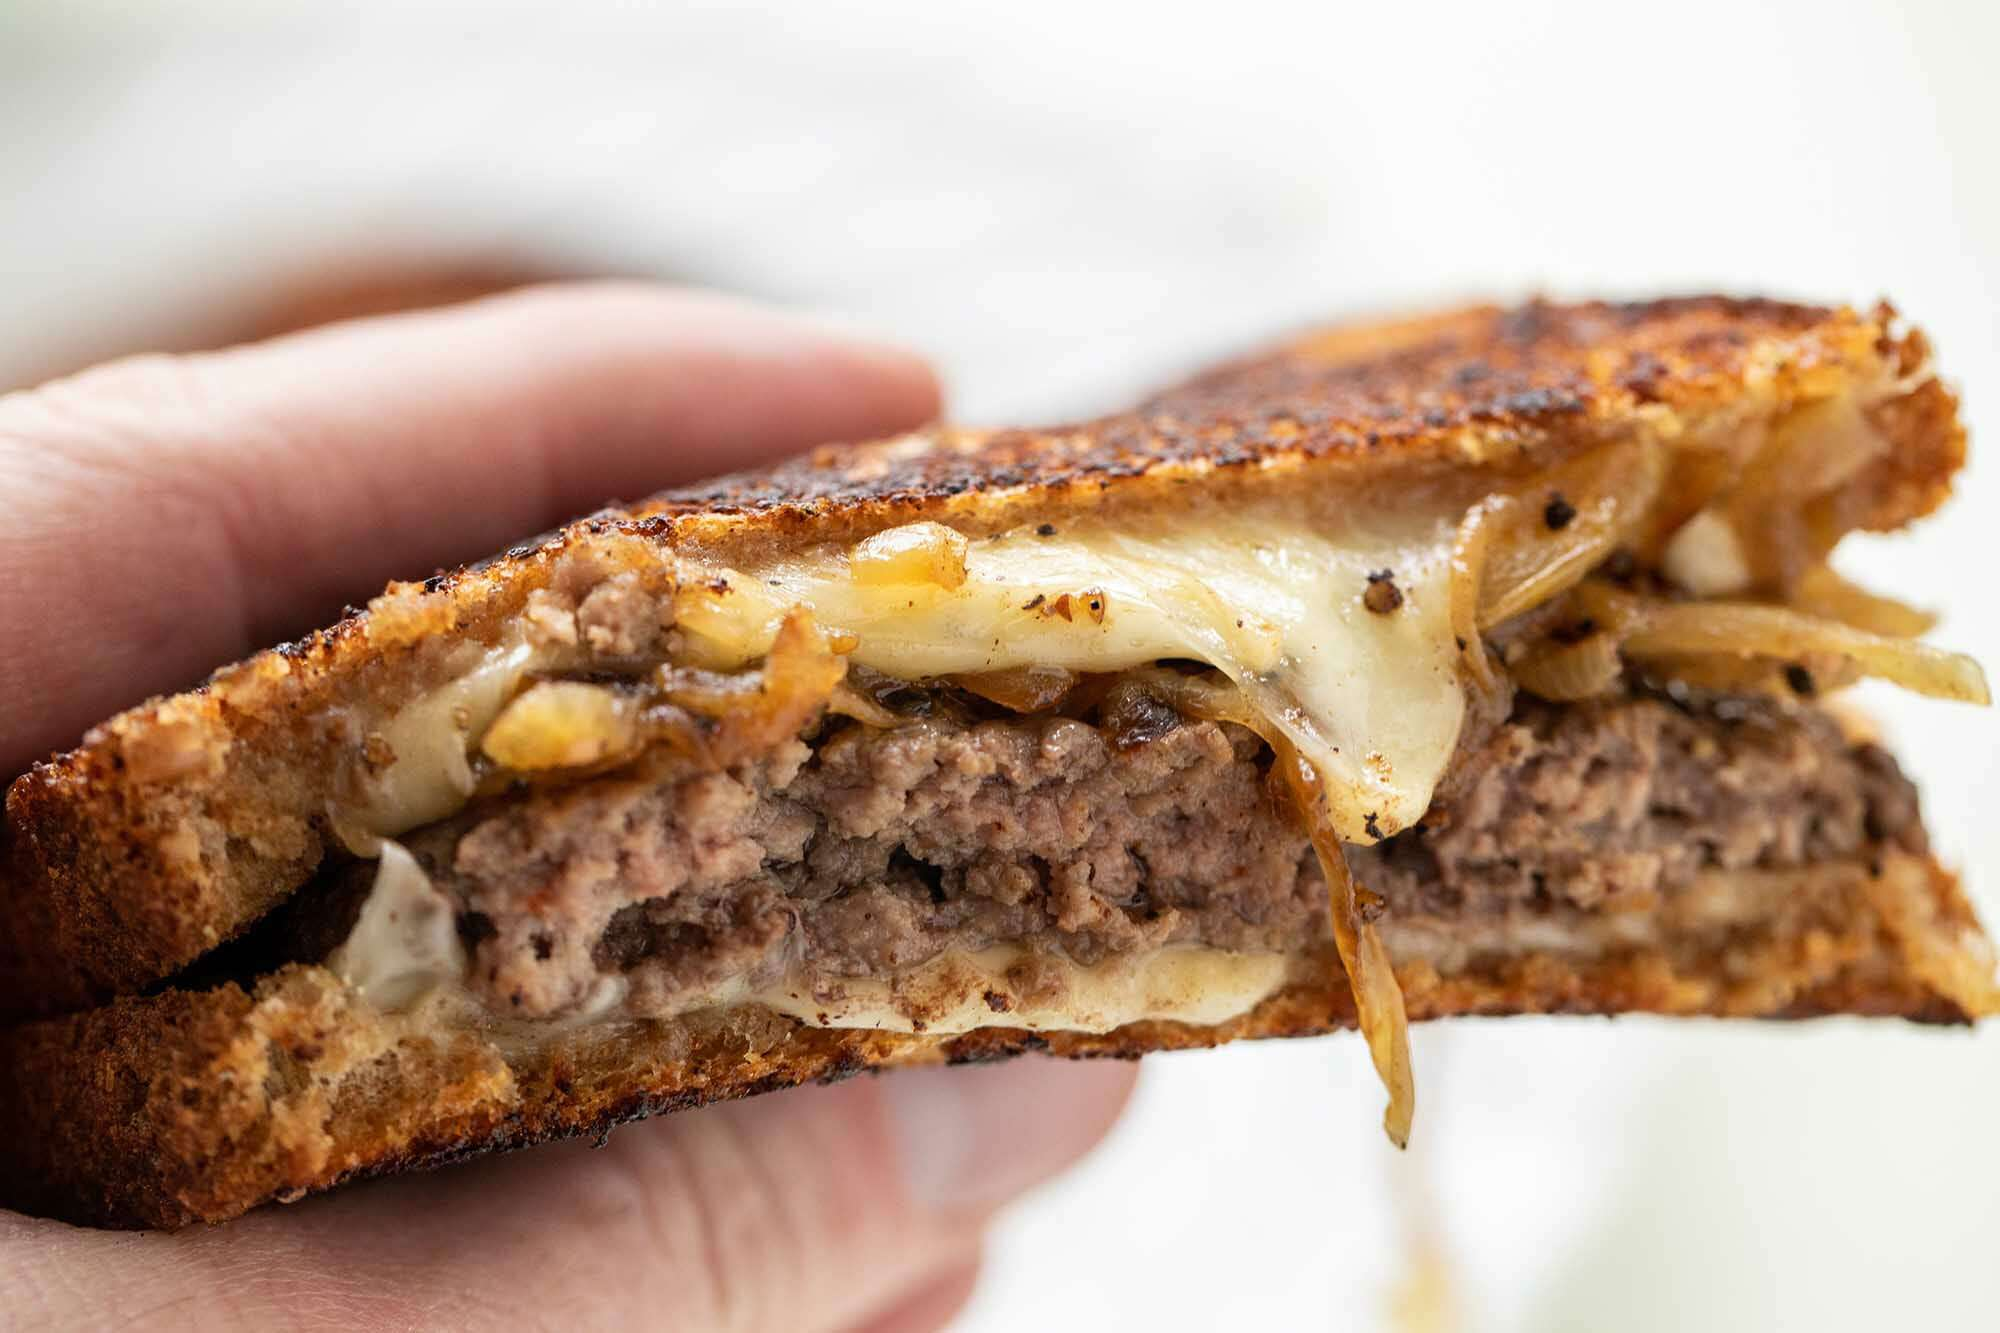 Perfect patty melt held in a hand with the melted cheese, caramelized onions and beef patties visible.